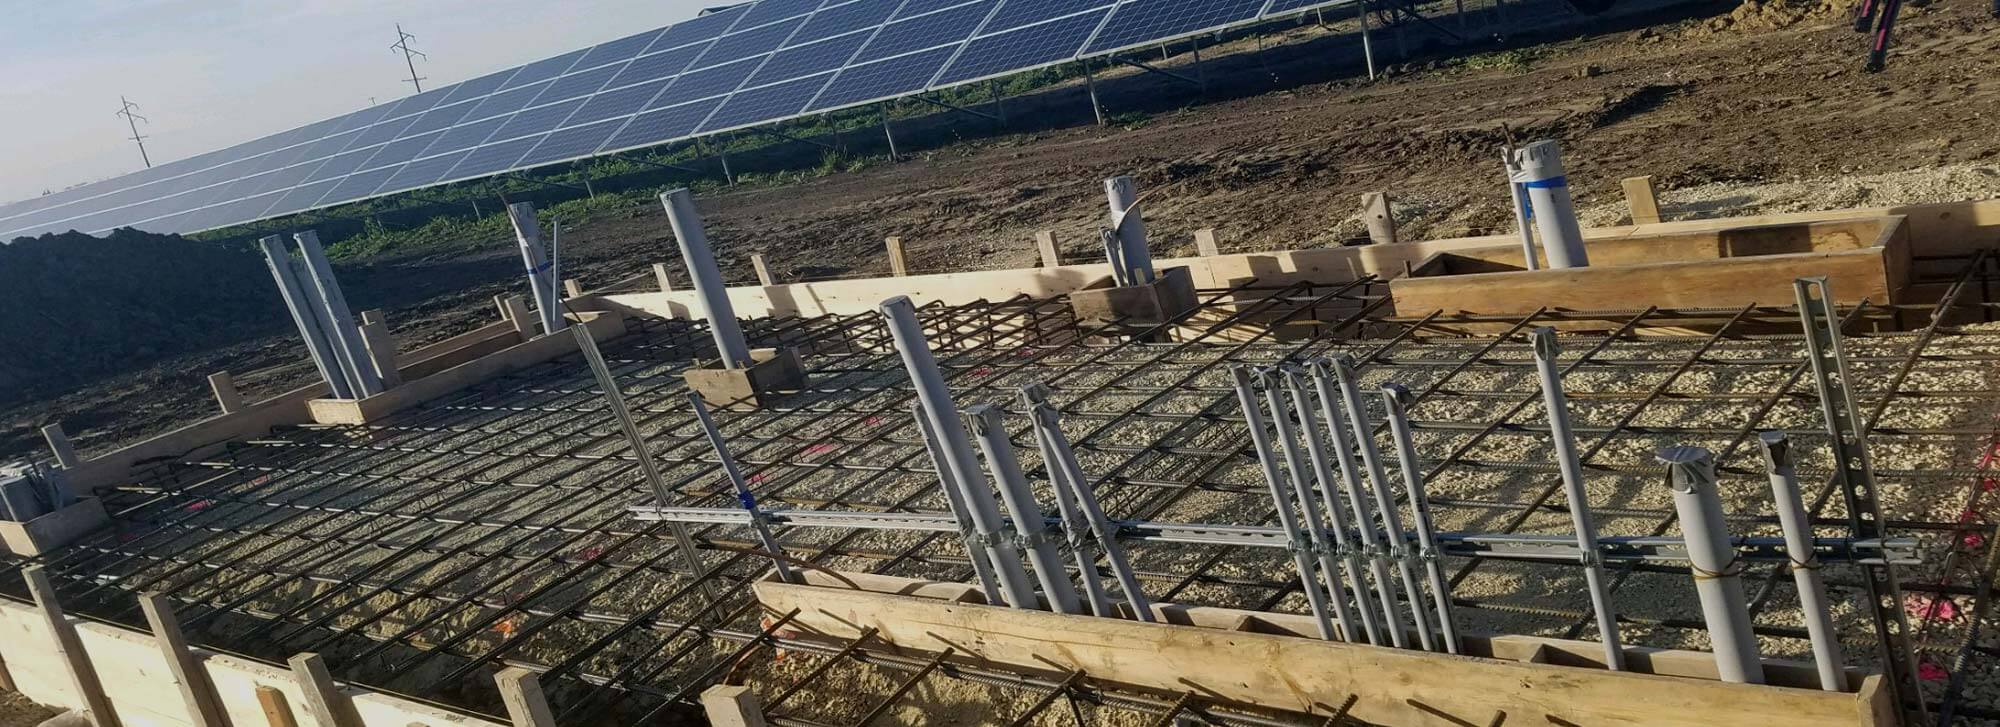 Concrete platform frames for a solar panel farm prepped and ready for concrete to be poured by Van Haren Construction